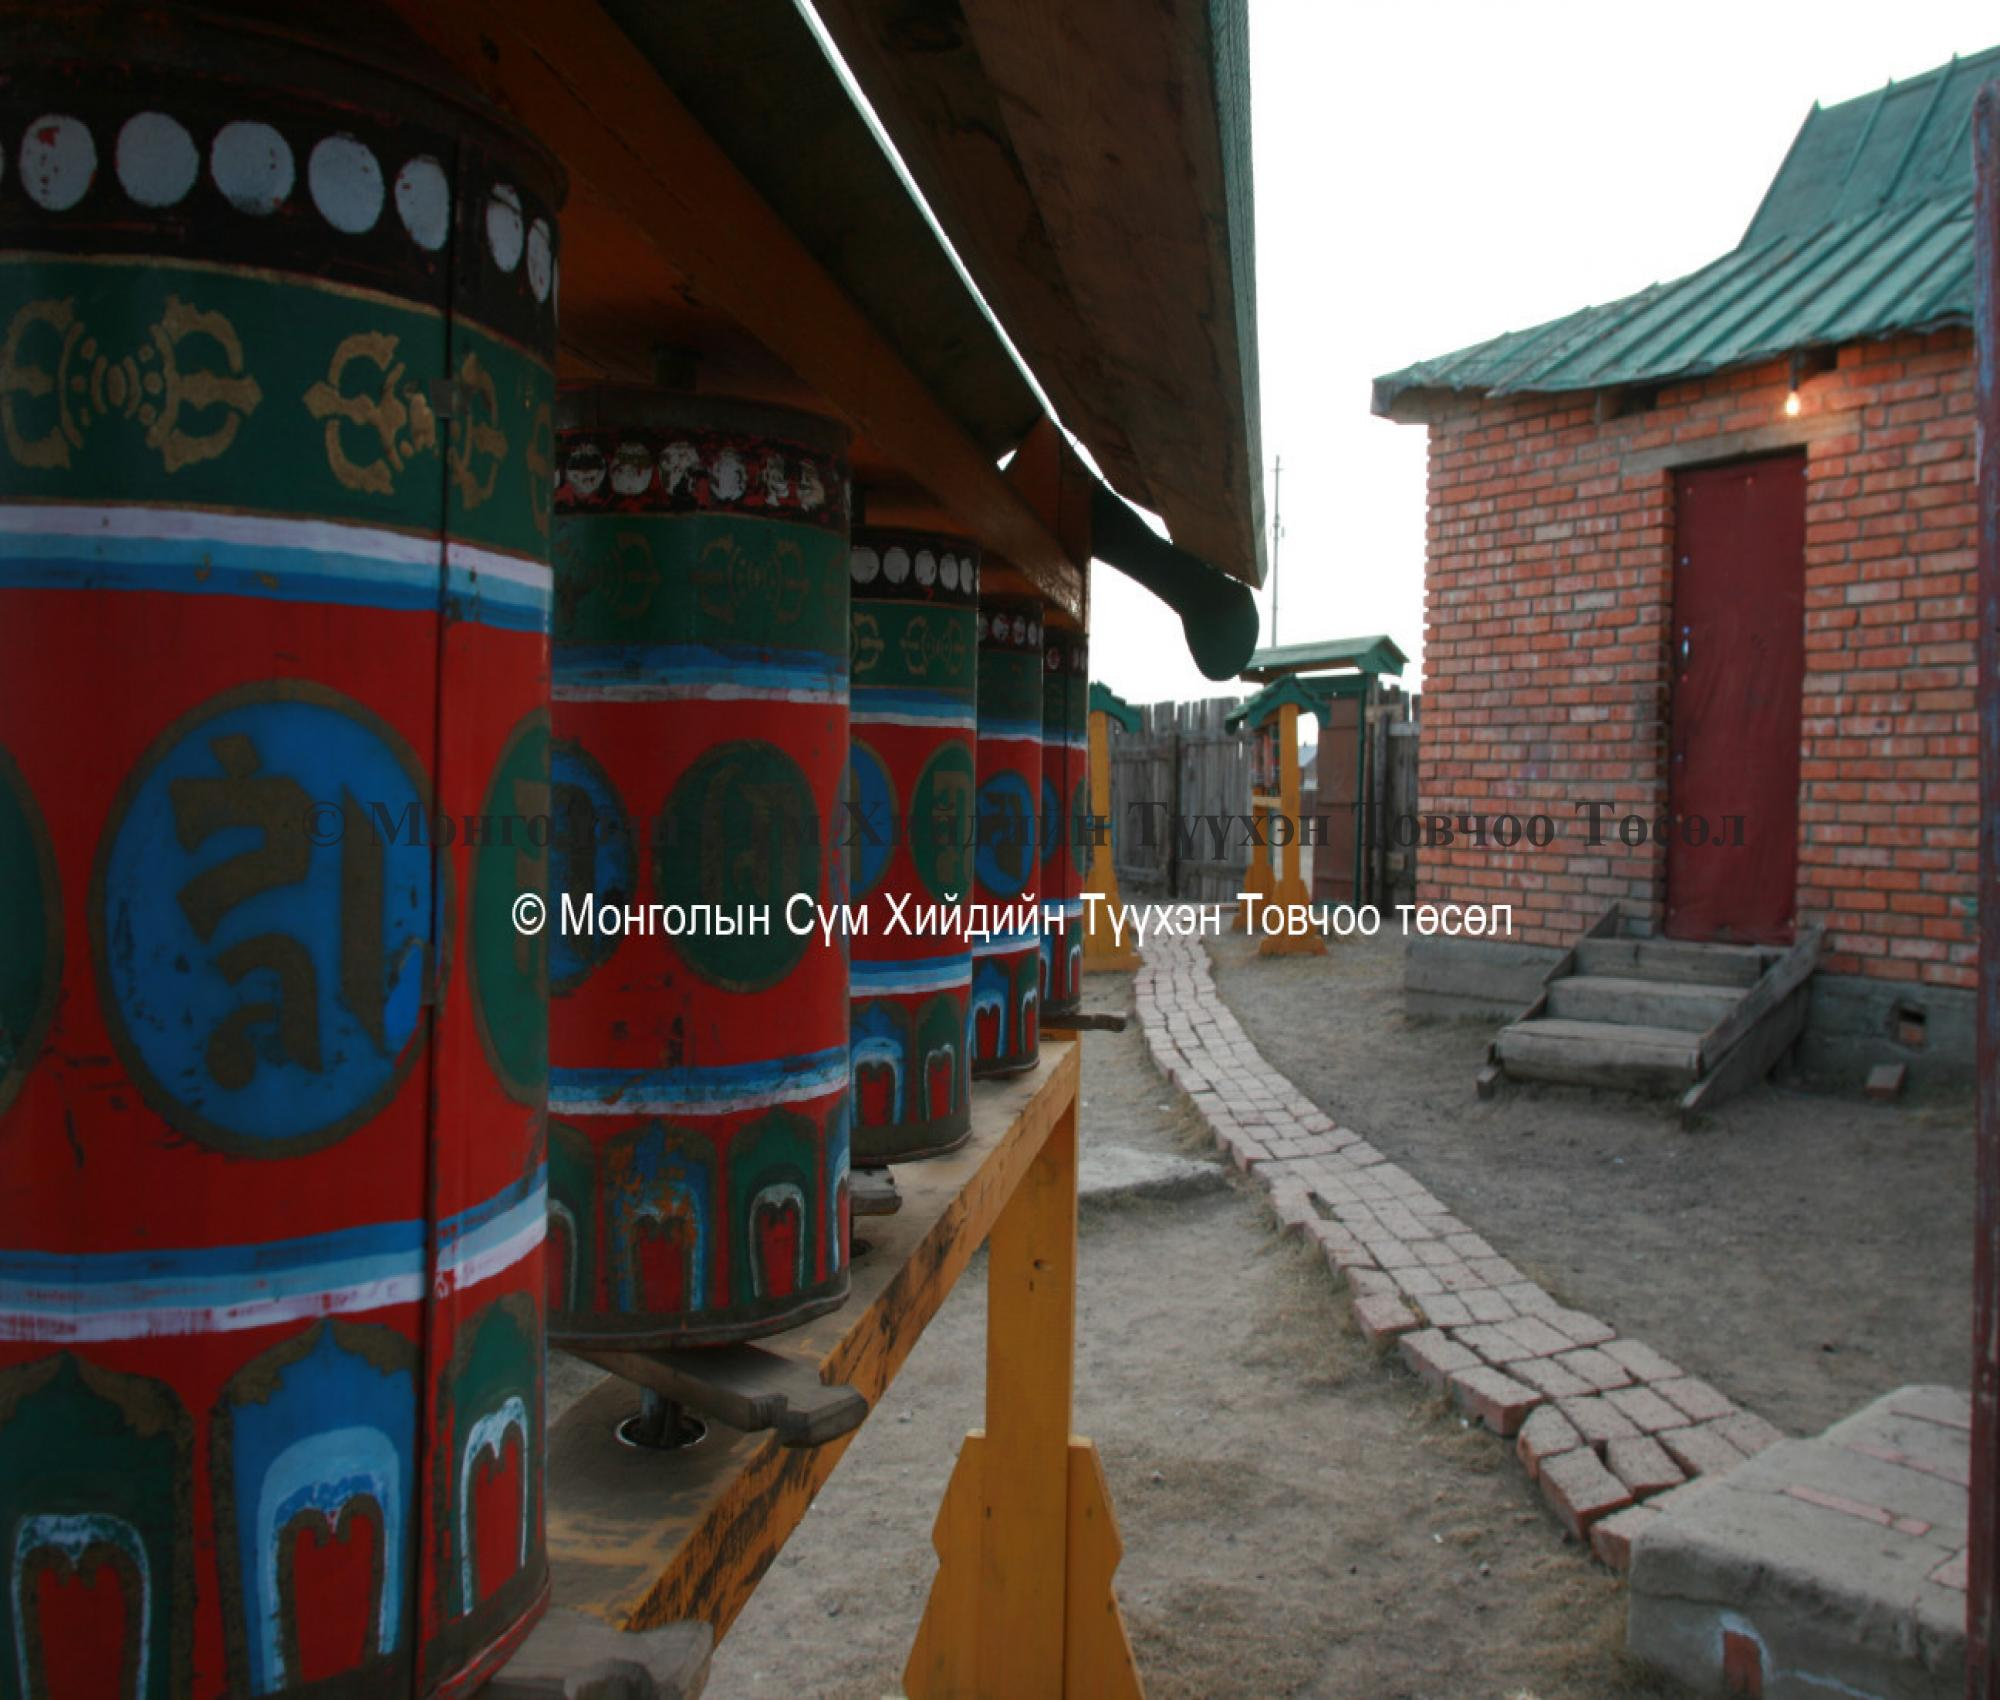 Prayer wheels in the courtyard